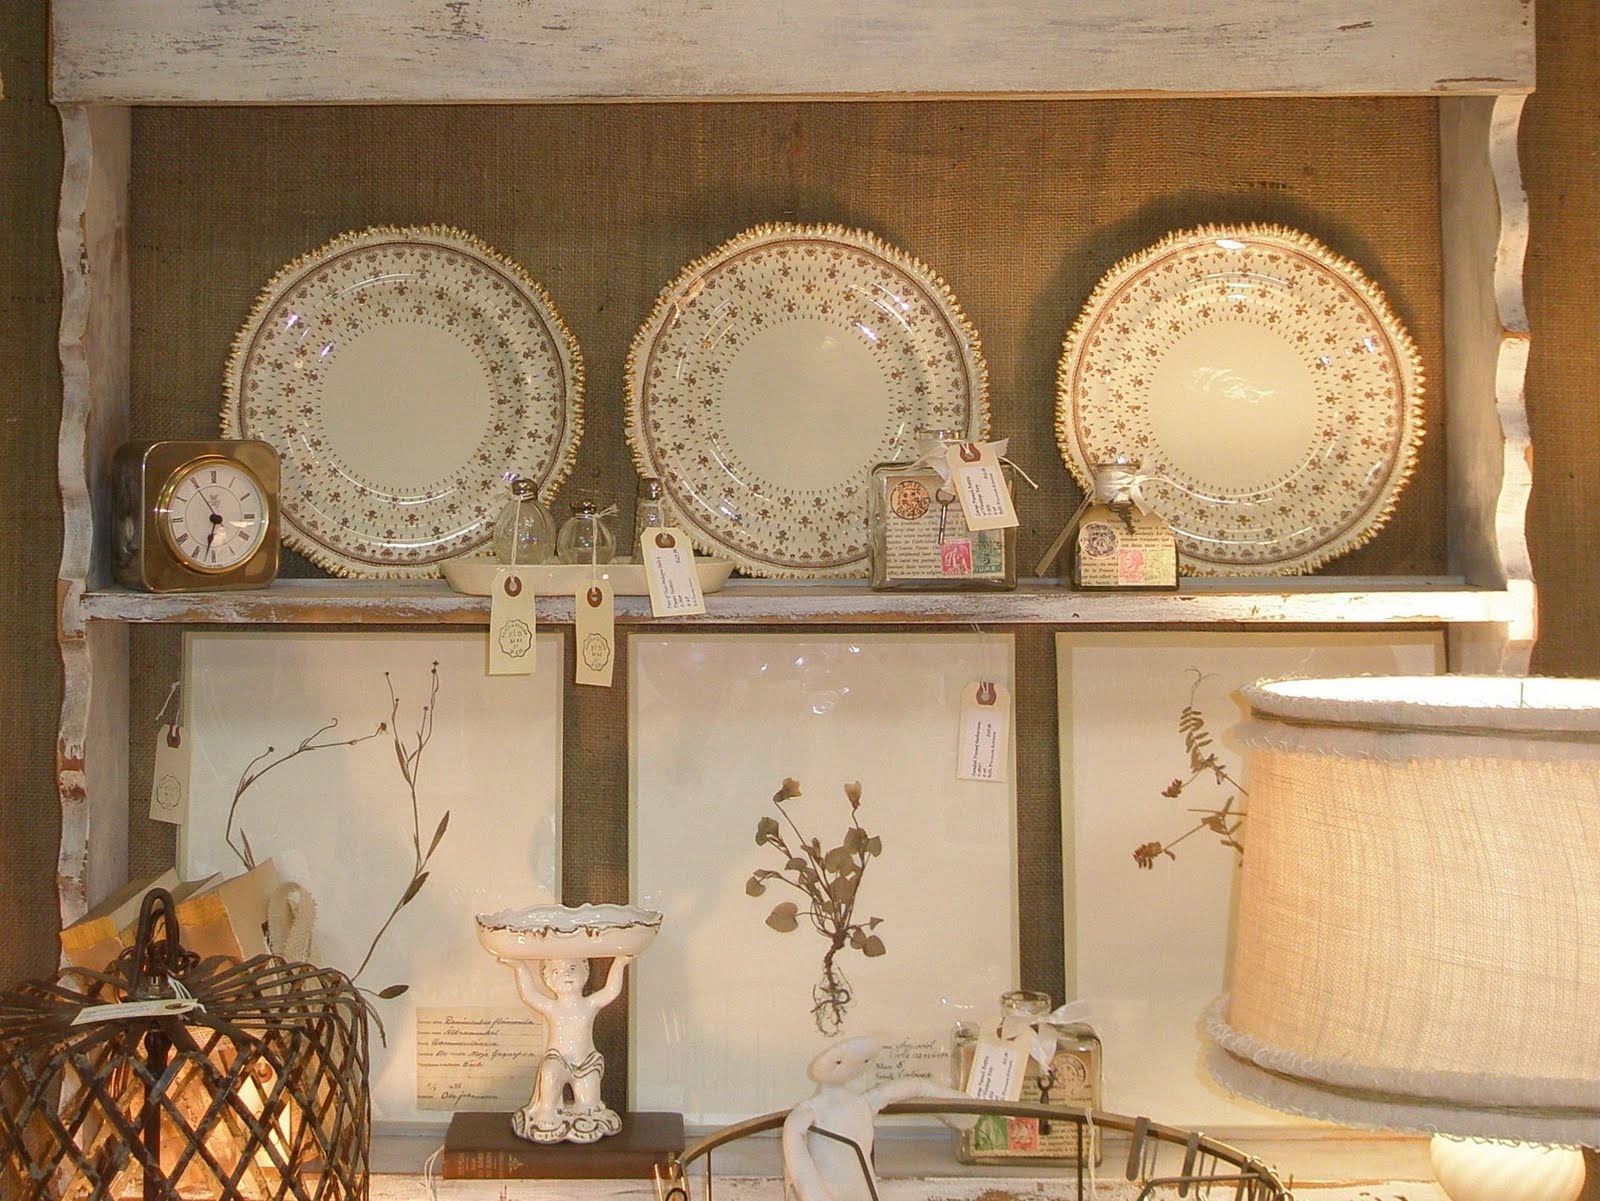 awesome French Country Kitchen Wall Decor #8: Belle Francaise Interiors French Country Retail Therapy. Kitchen wall decor  ideas about decorating ...